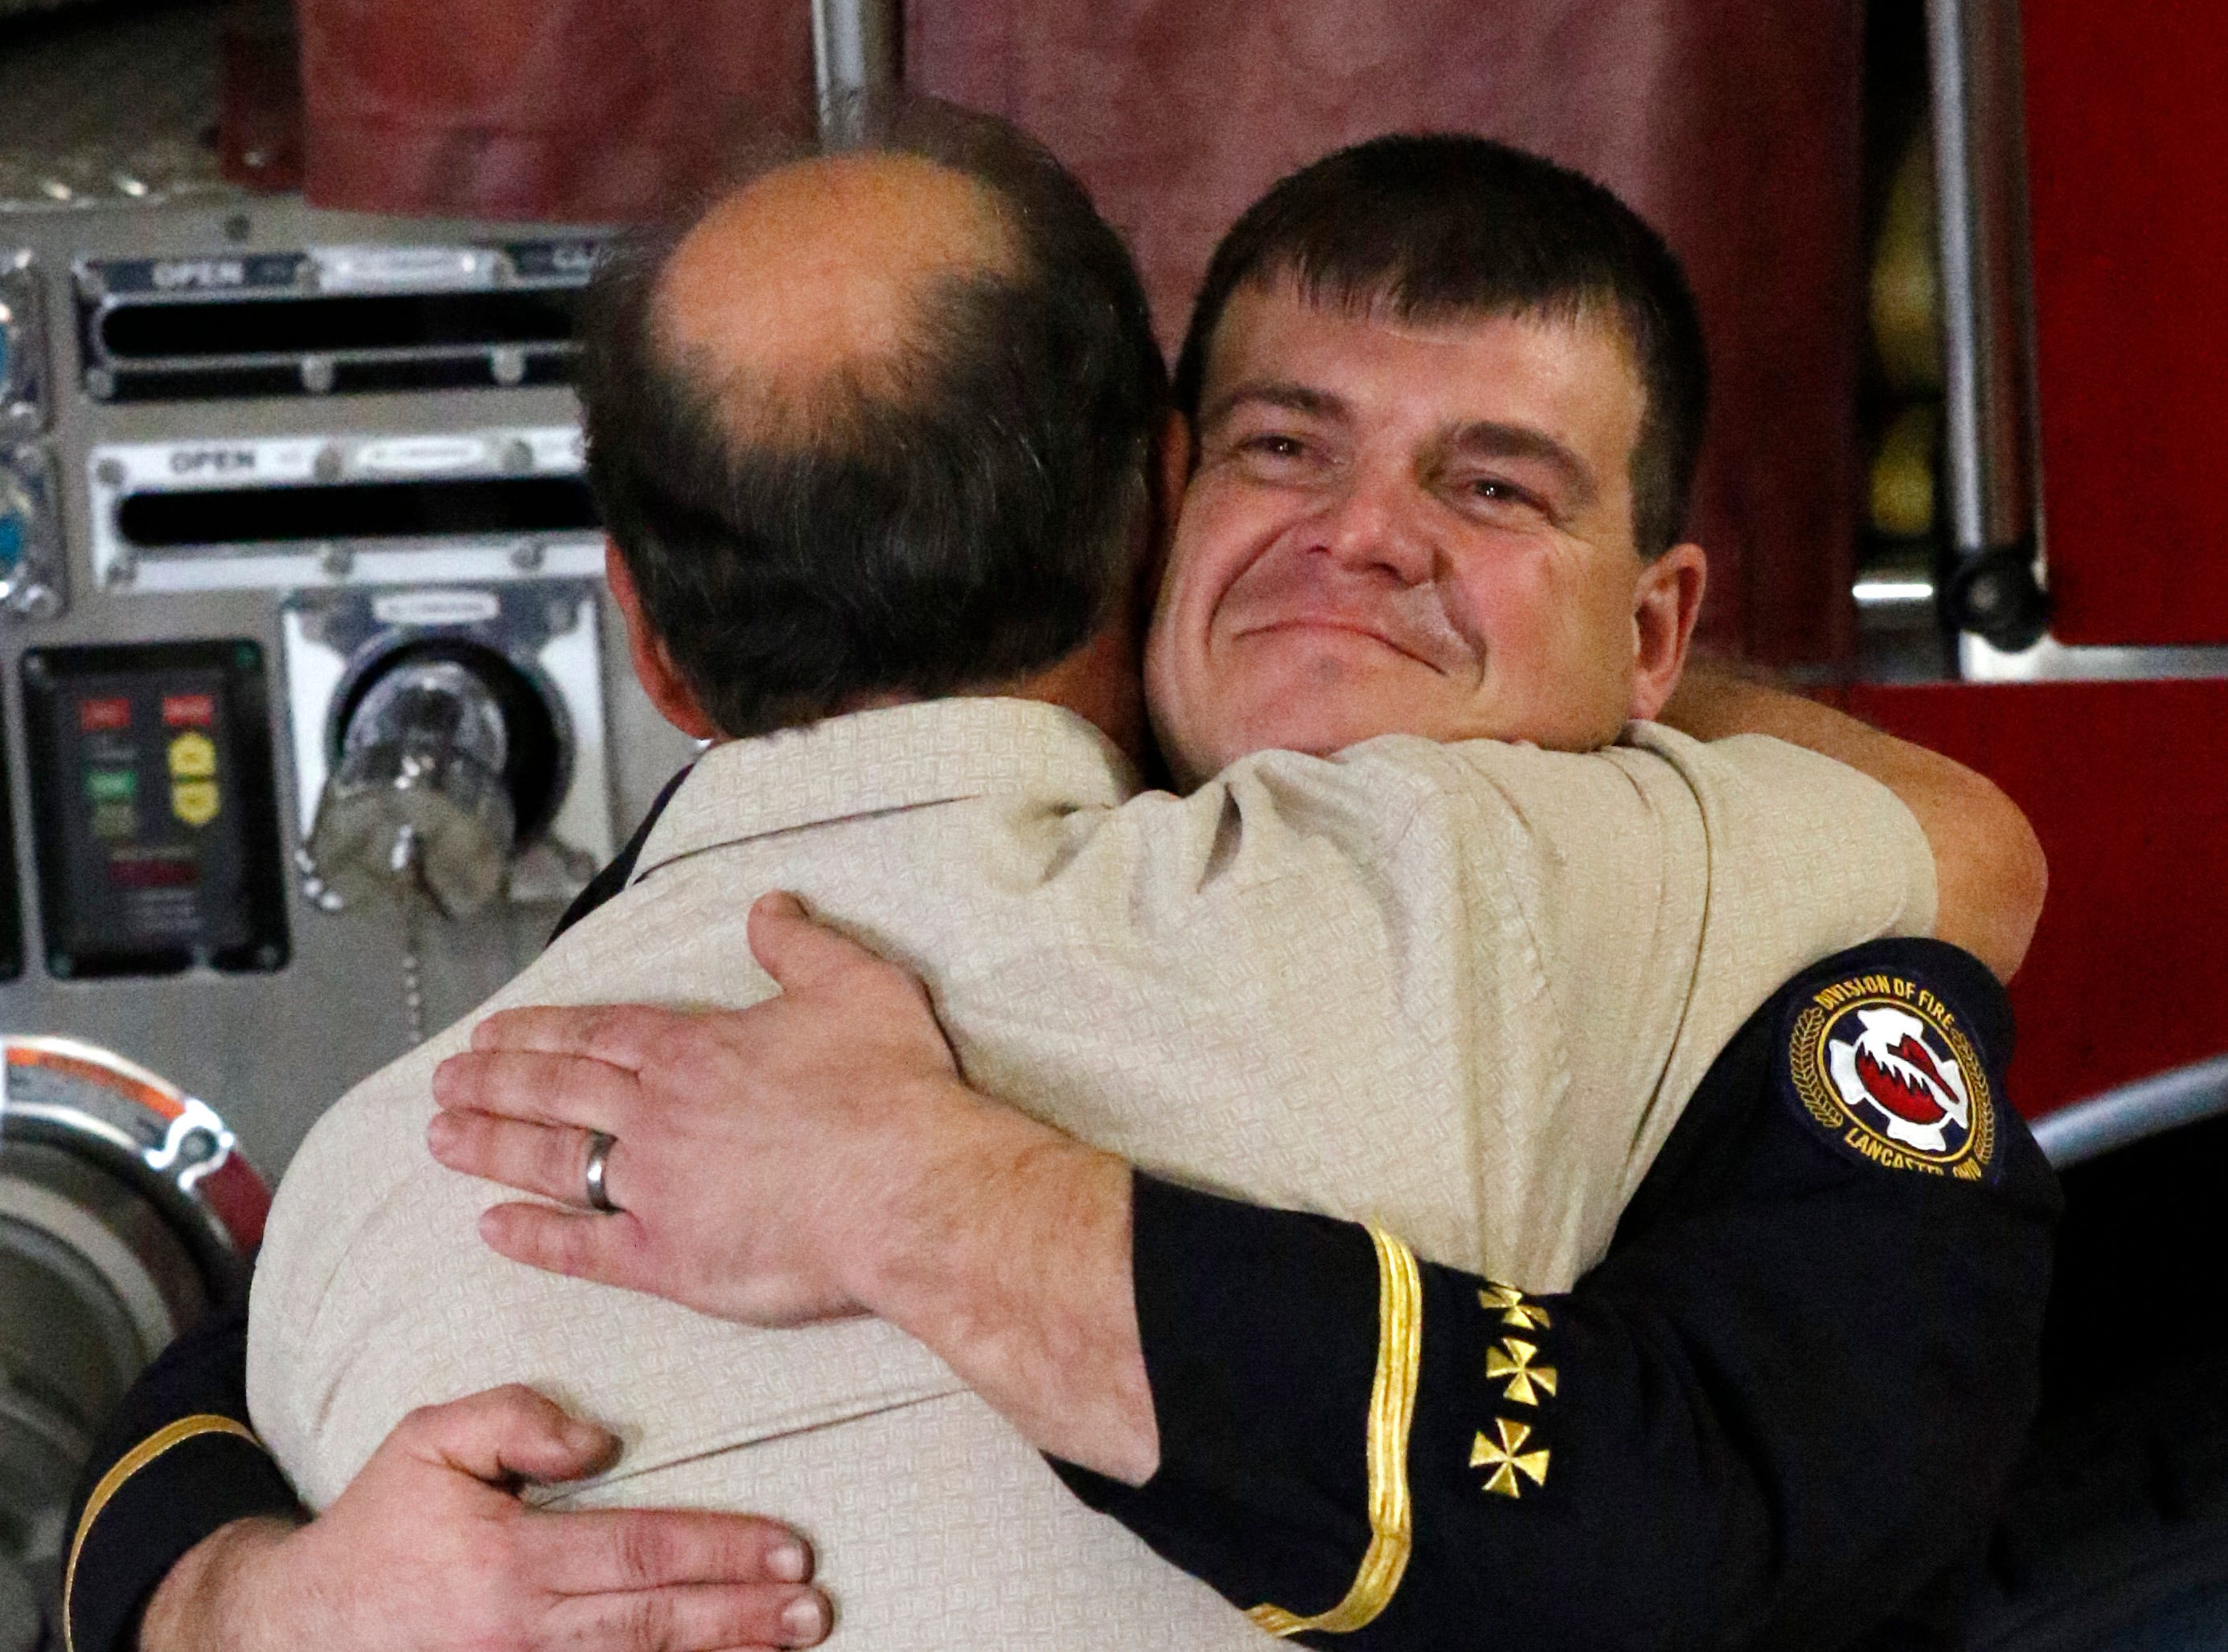 Lancaster Fire Department Lt. Jeremy Kraner hugs his father retired LFD Assistant Chief John Kraner during his promotion ceremony Friday afternoon, Feb. 15, 2019, at Engine House One in Lancaster.